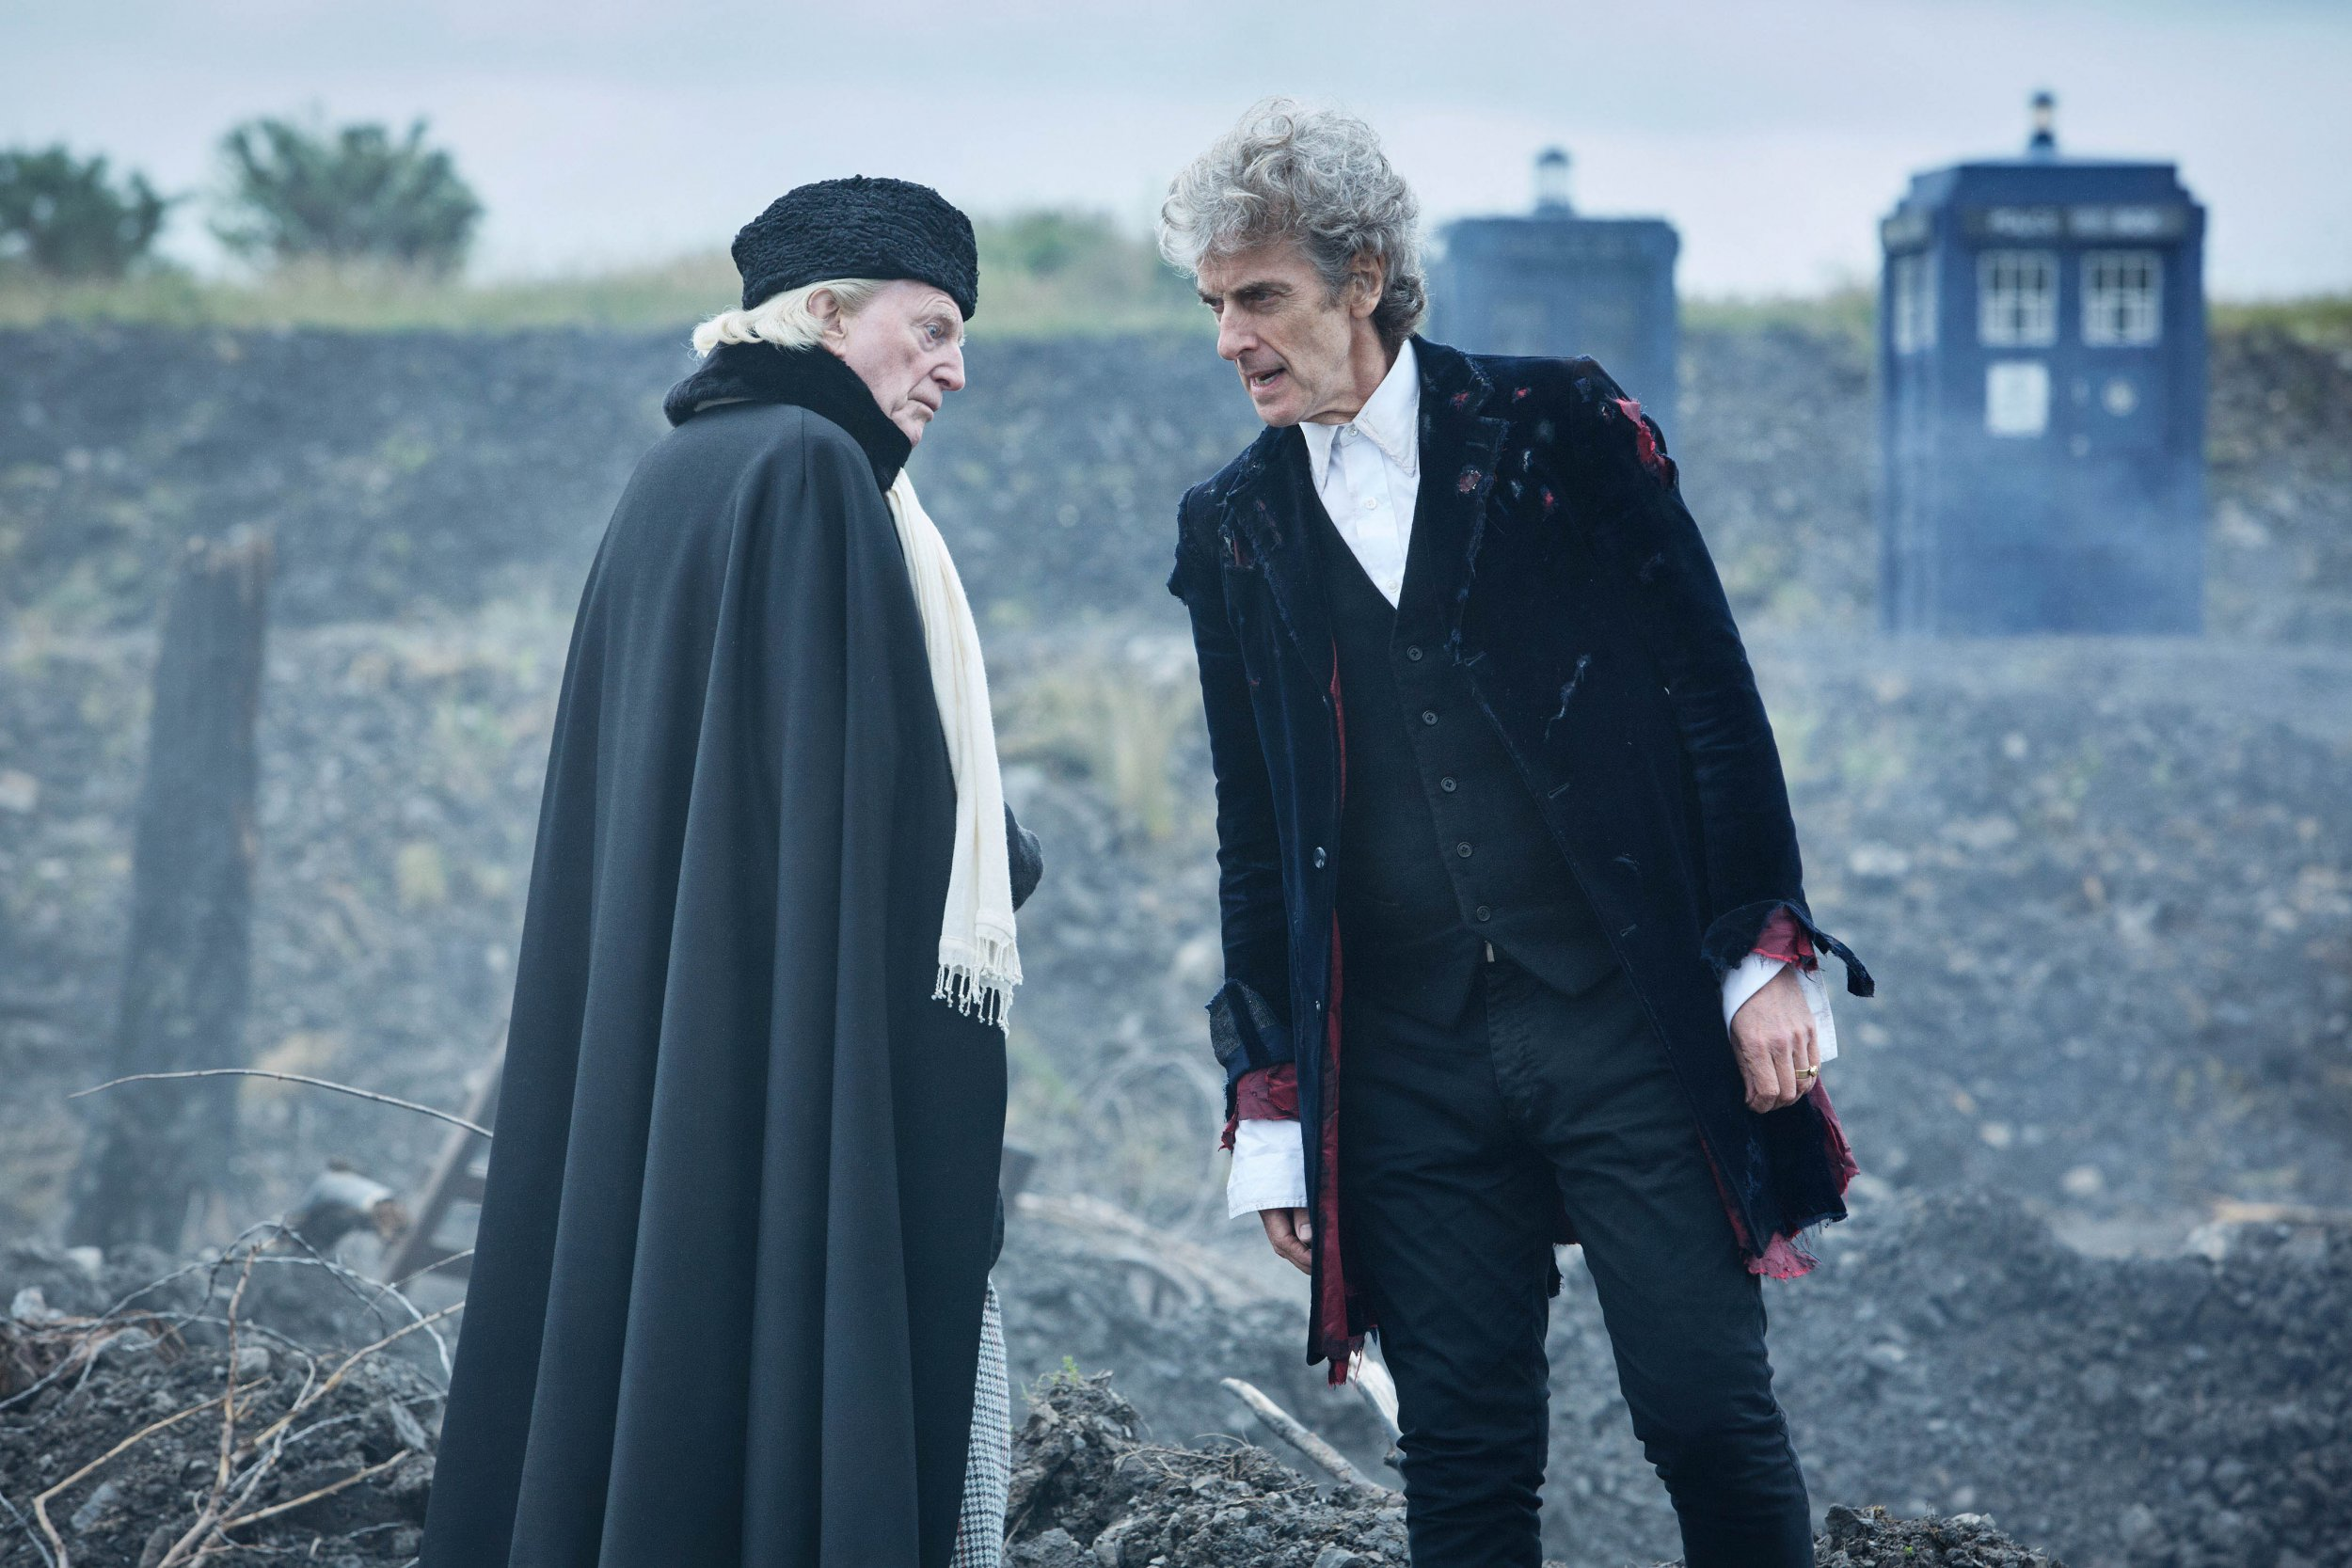 Doctor Who_Xmas 2017_PreTX Episodic_12